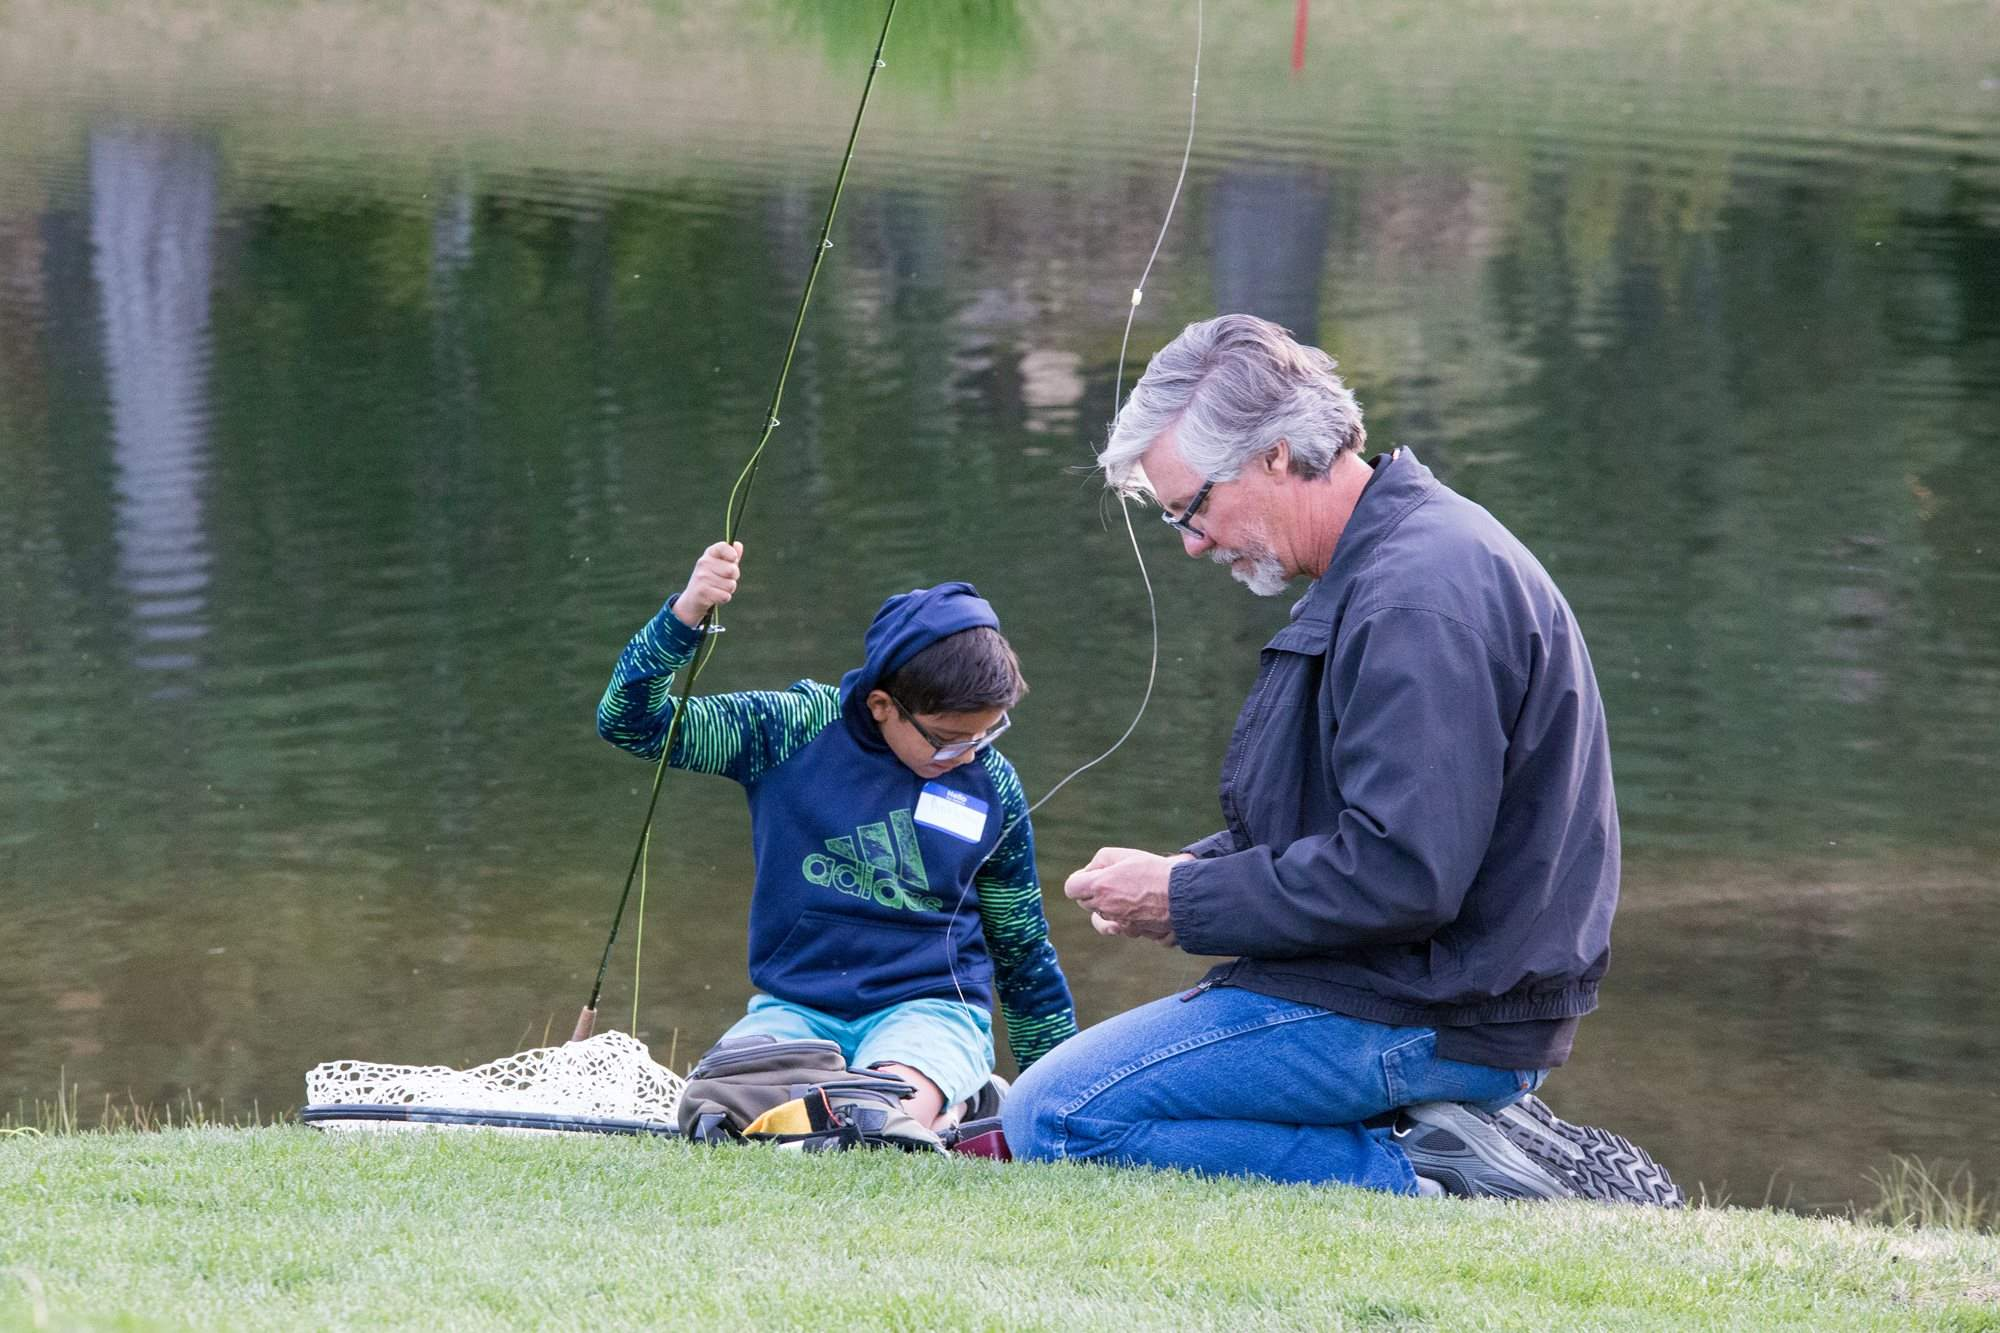 Big Brothers Big Sisters & Montrêux's Fly-Fishing Group